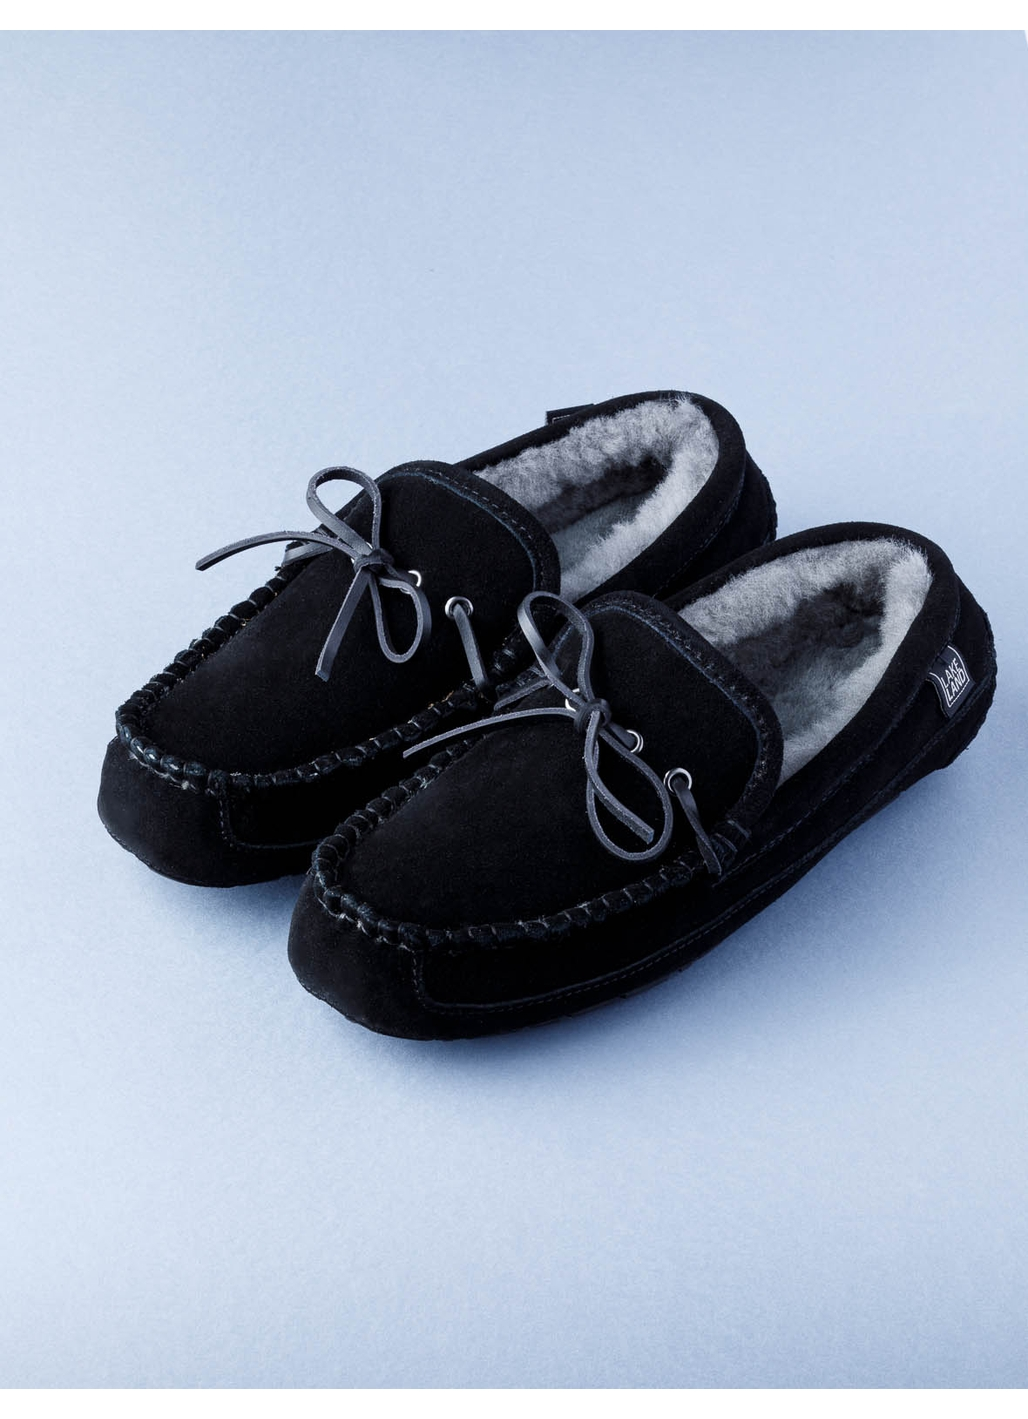 Men's Sheepskin Moccasin Slippers in Black